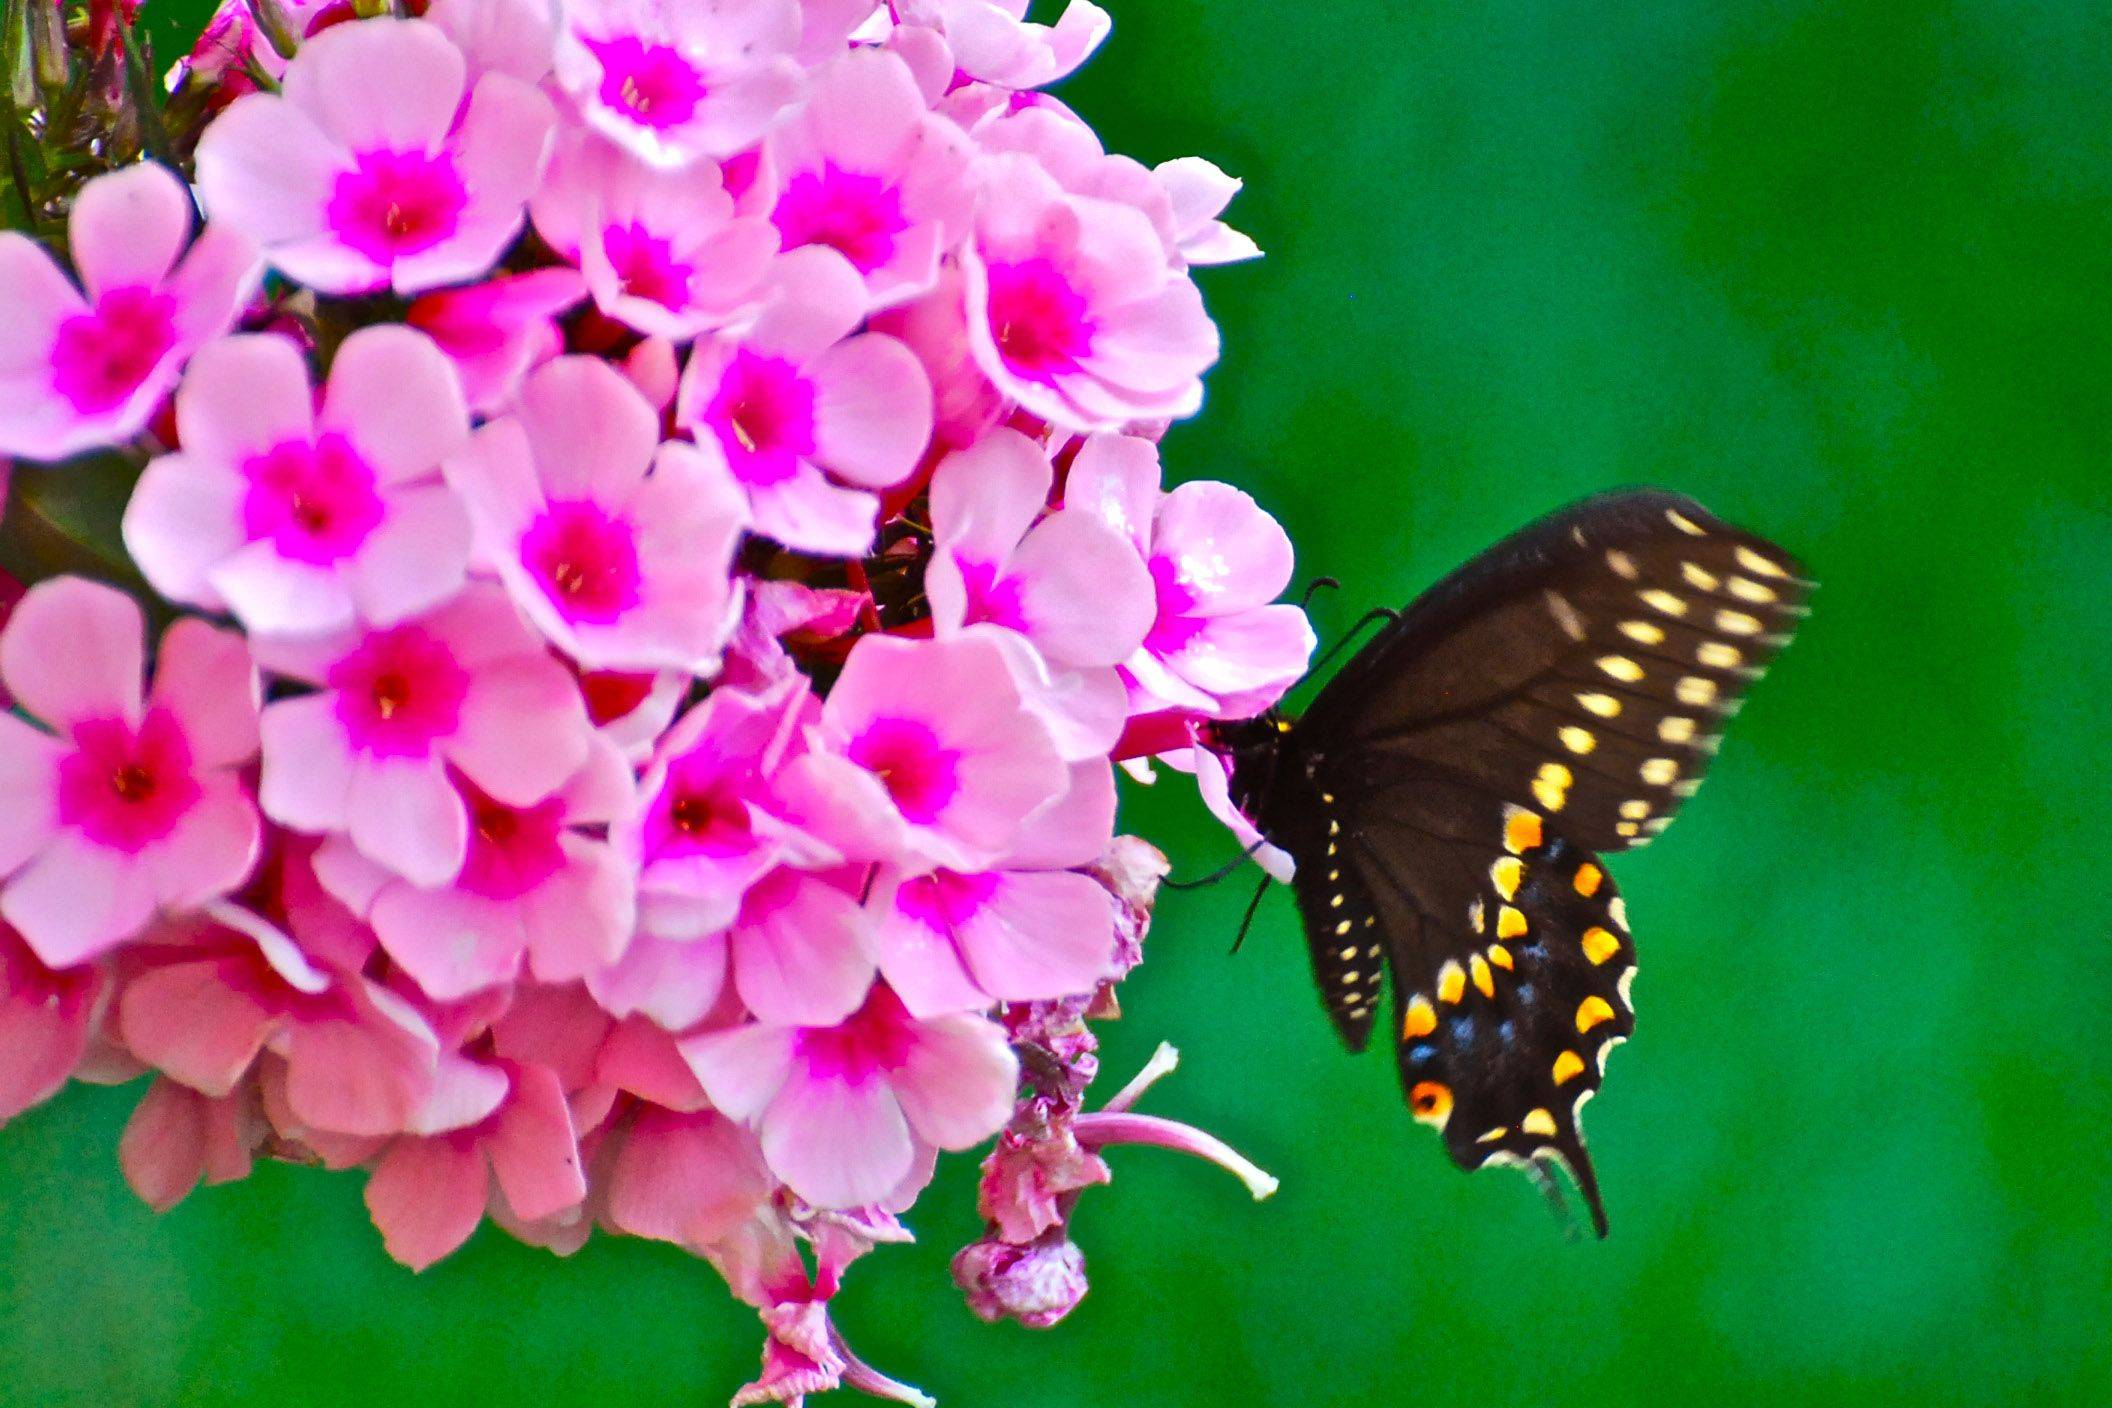 Milton Hoskins of HampshireThis swallowtail must like what the phlox has to offer since the butterfly is straddling a petal to get at it. I hope to see these both in my Hampshire yard again this year.